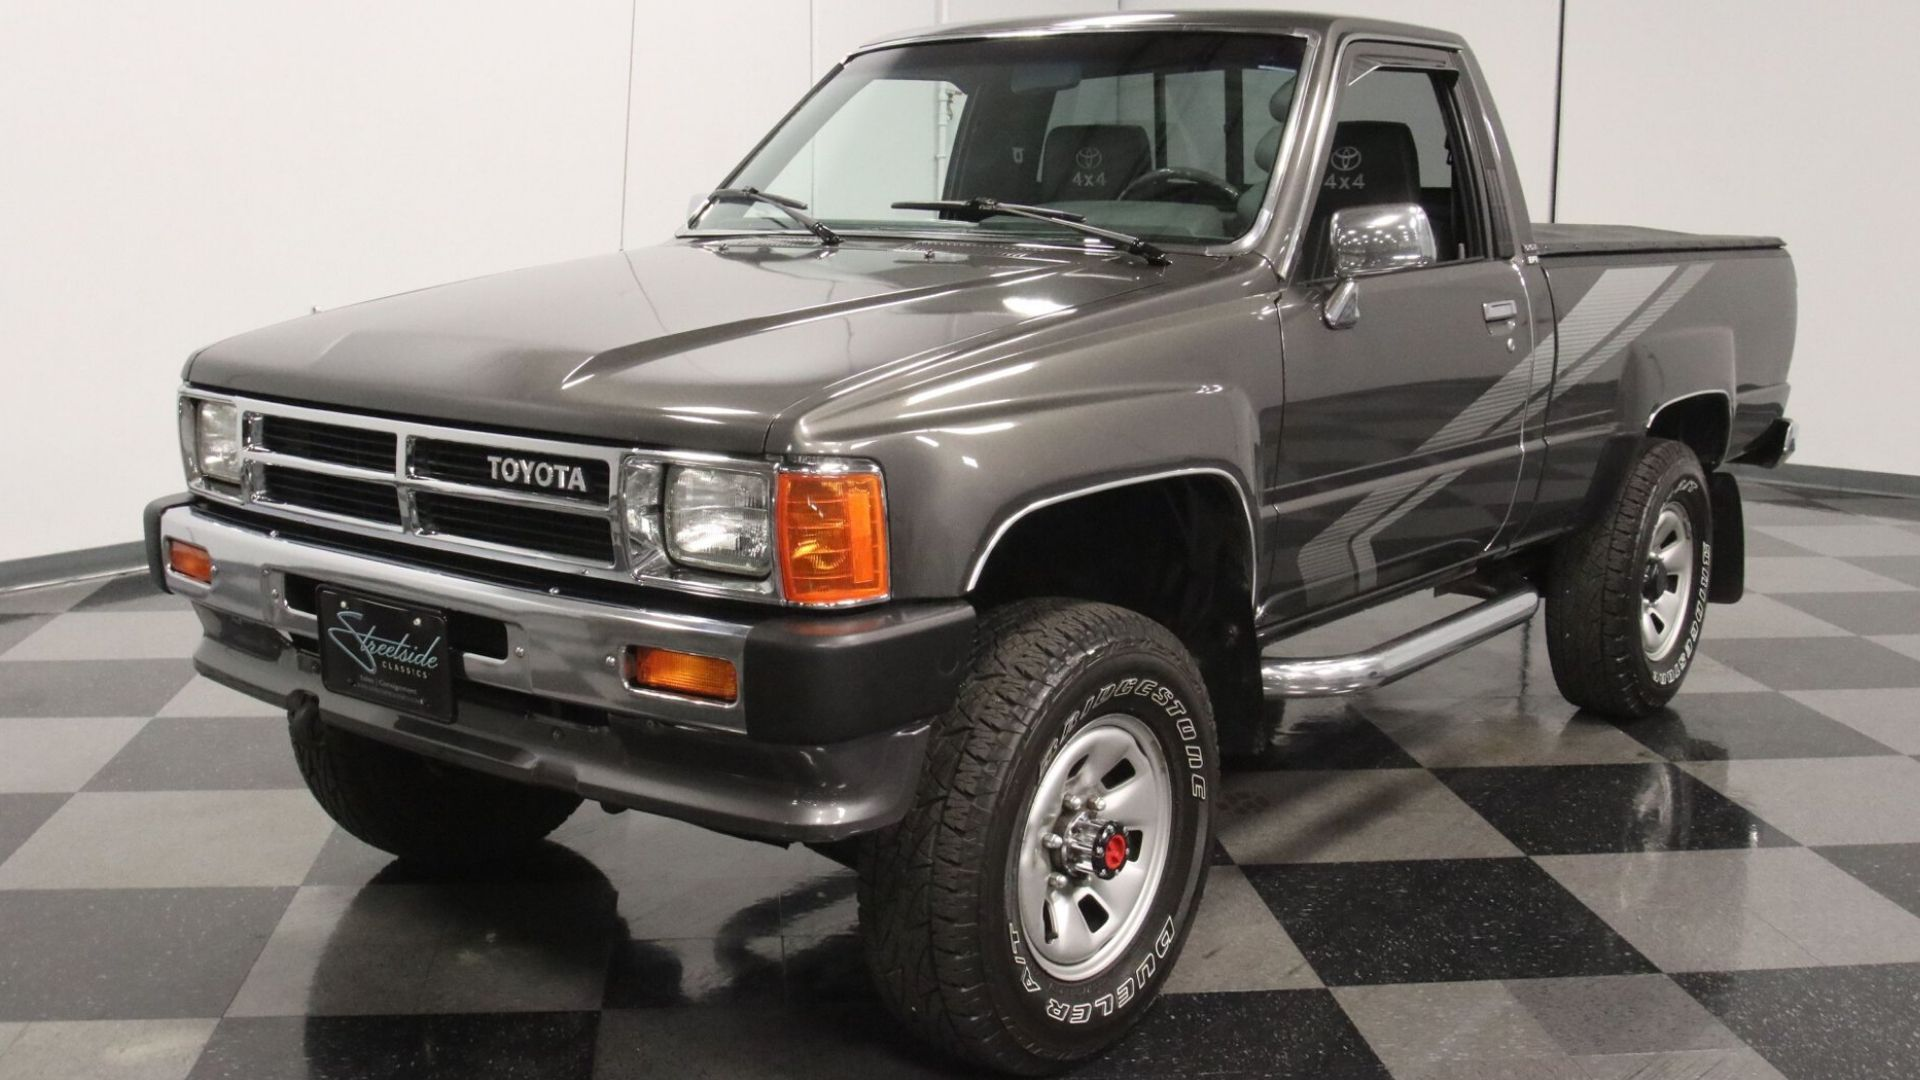 Which 80s Truck Would Want To You Buy?